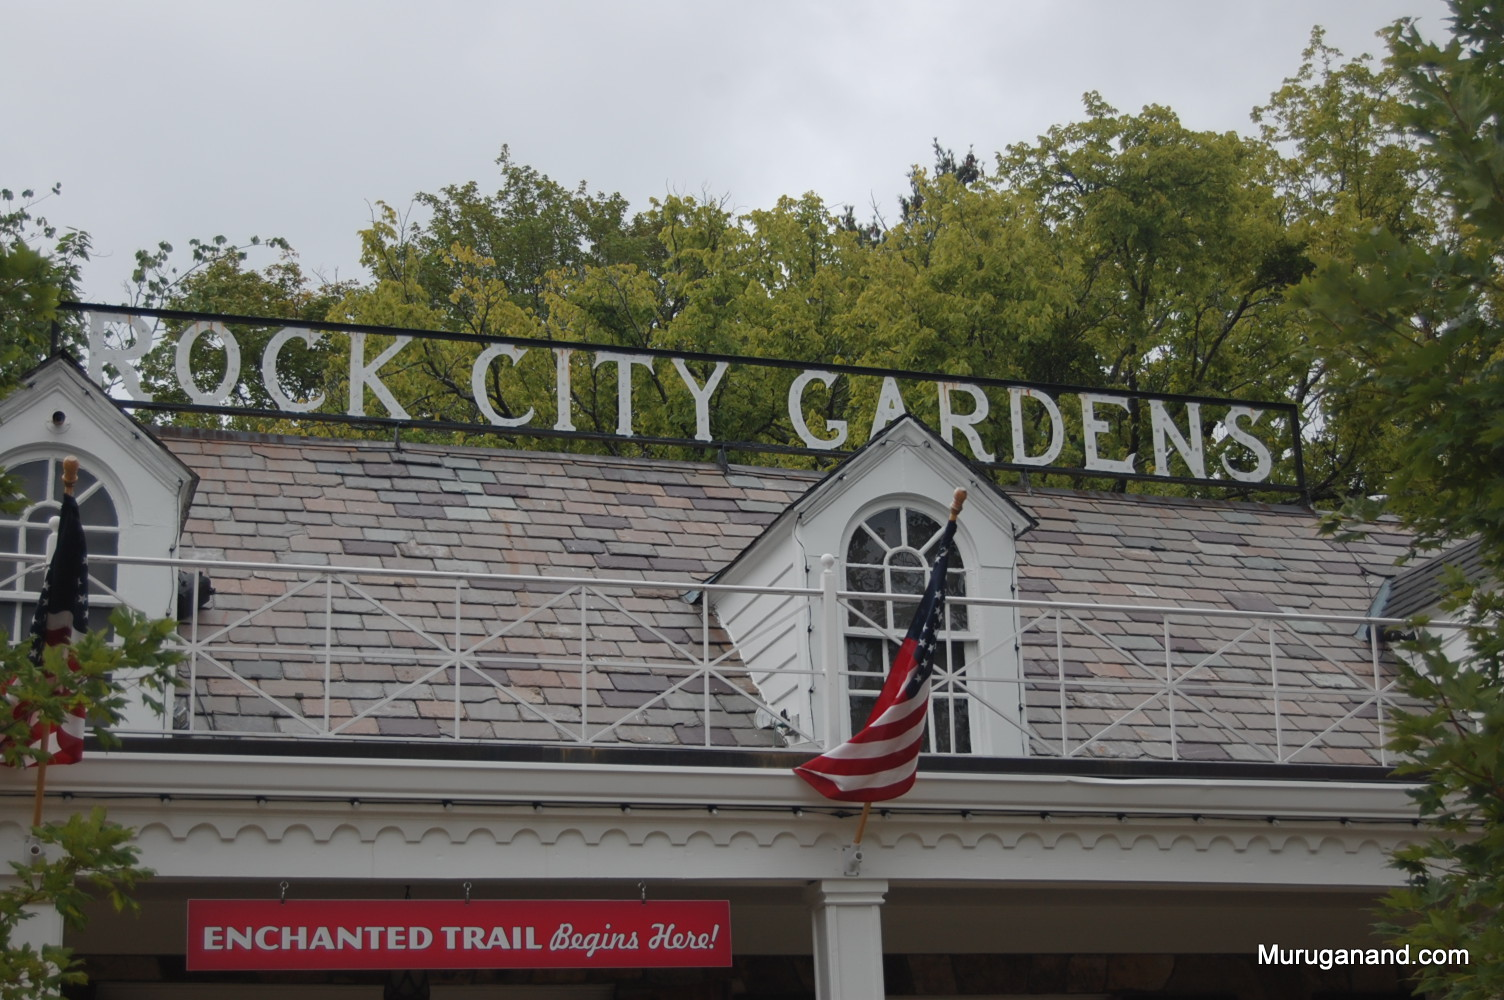 Rock city gardens is another natural attraction. It is 1700 ft above sea level.